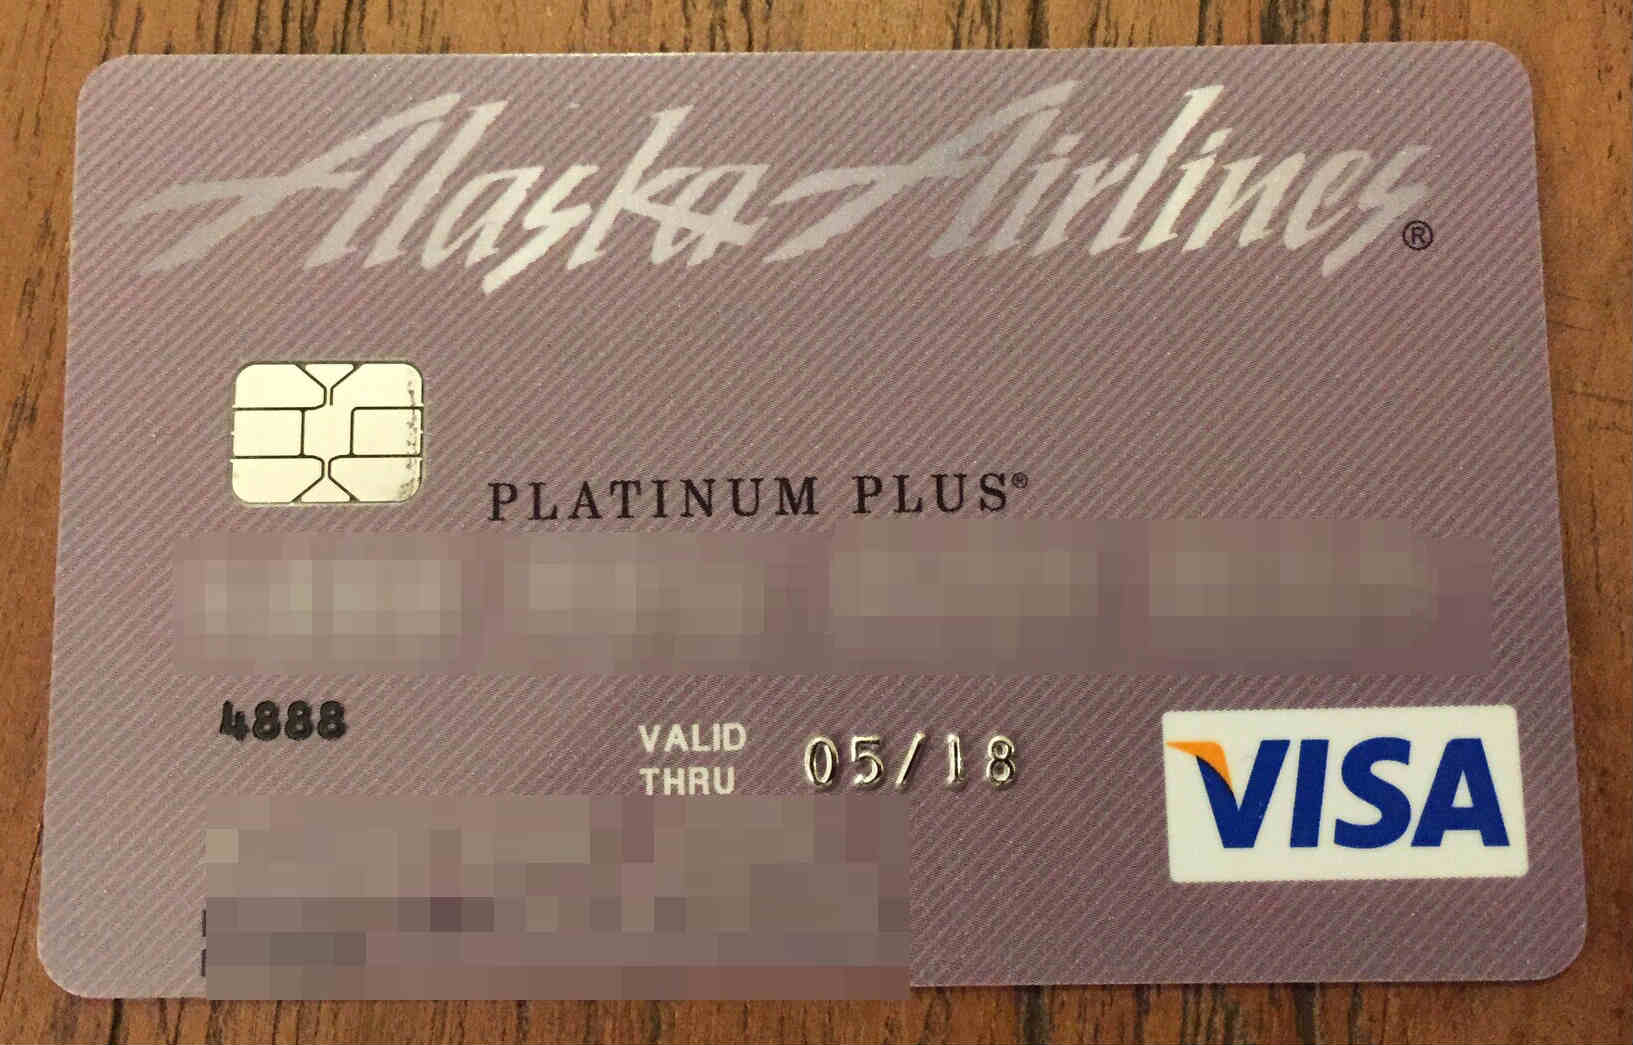 Alaska Credit Card Login >> Alaska Airlines Platinum Plus Visa Card Will Match Rewards Of Visa